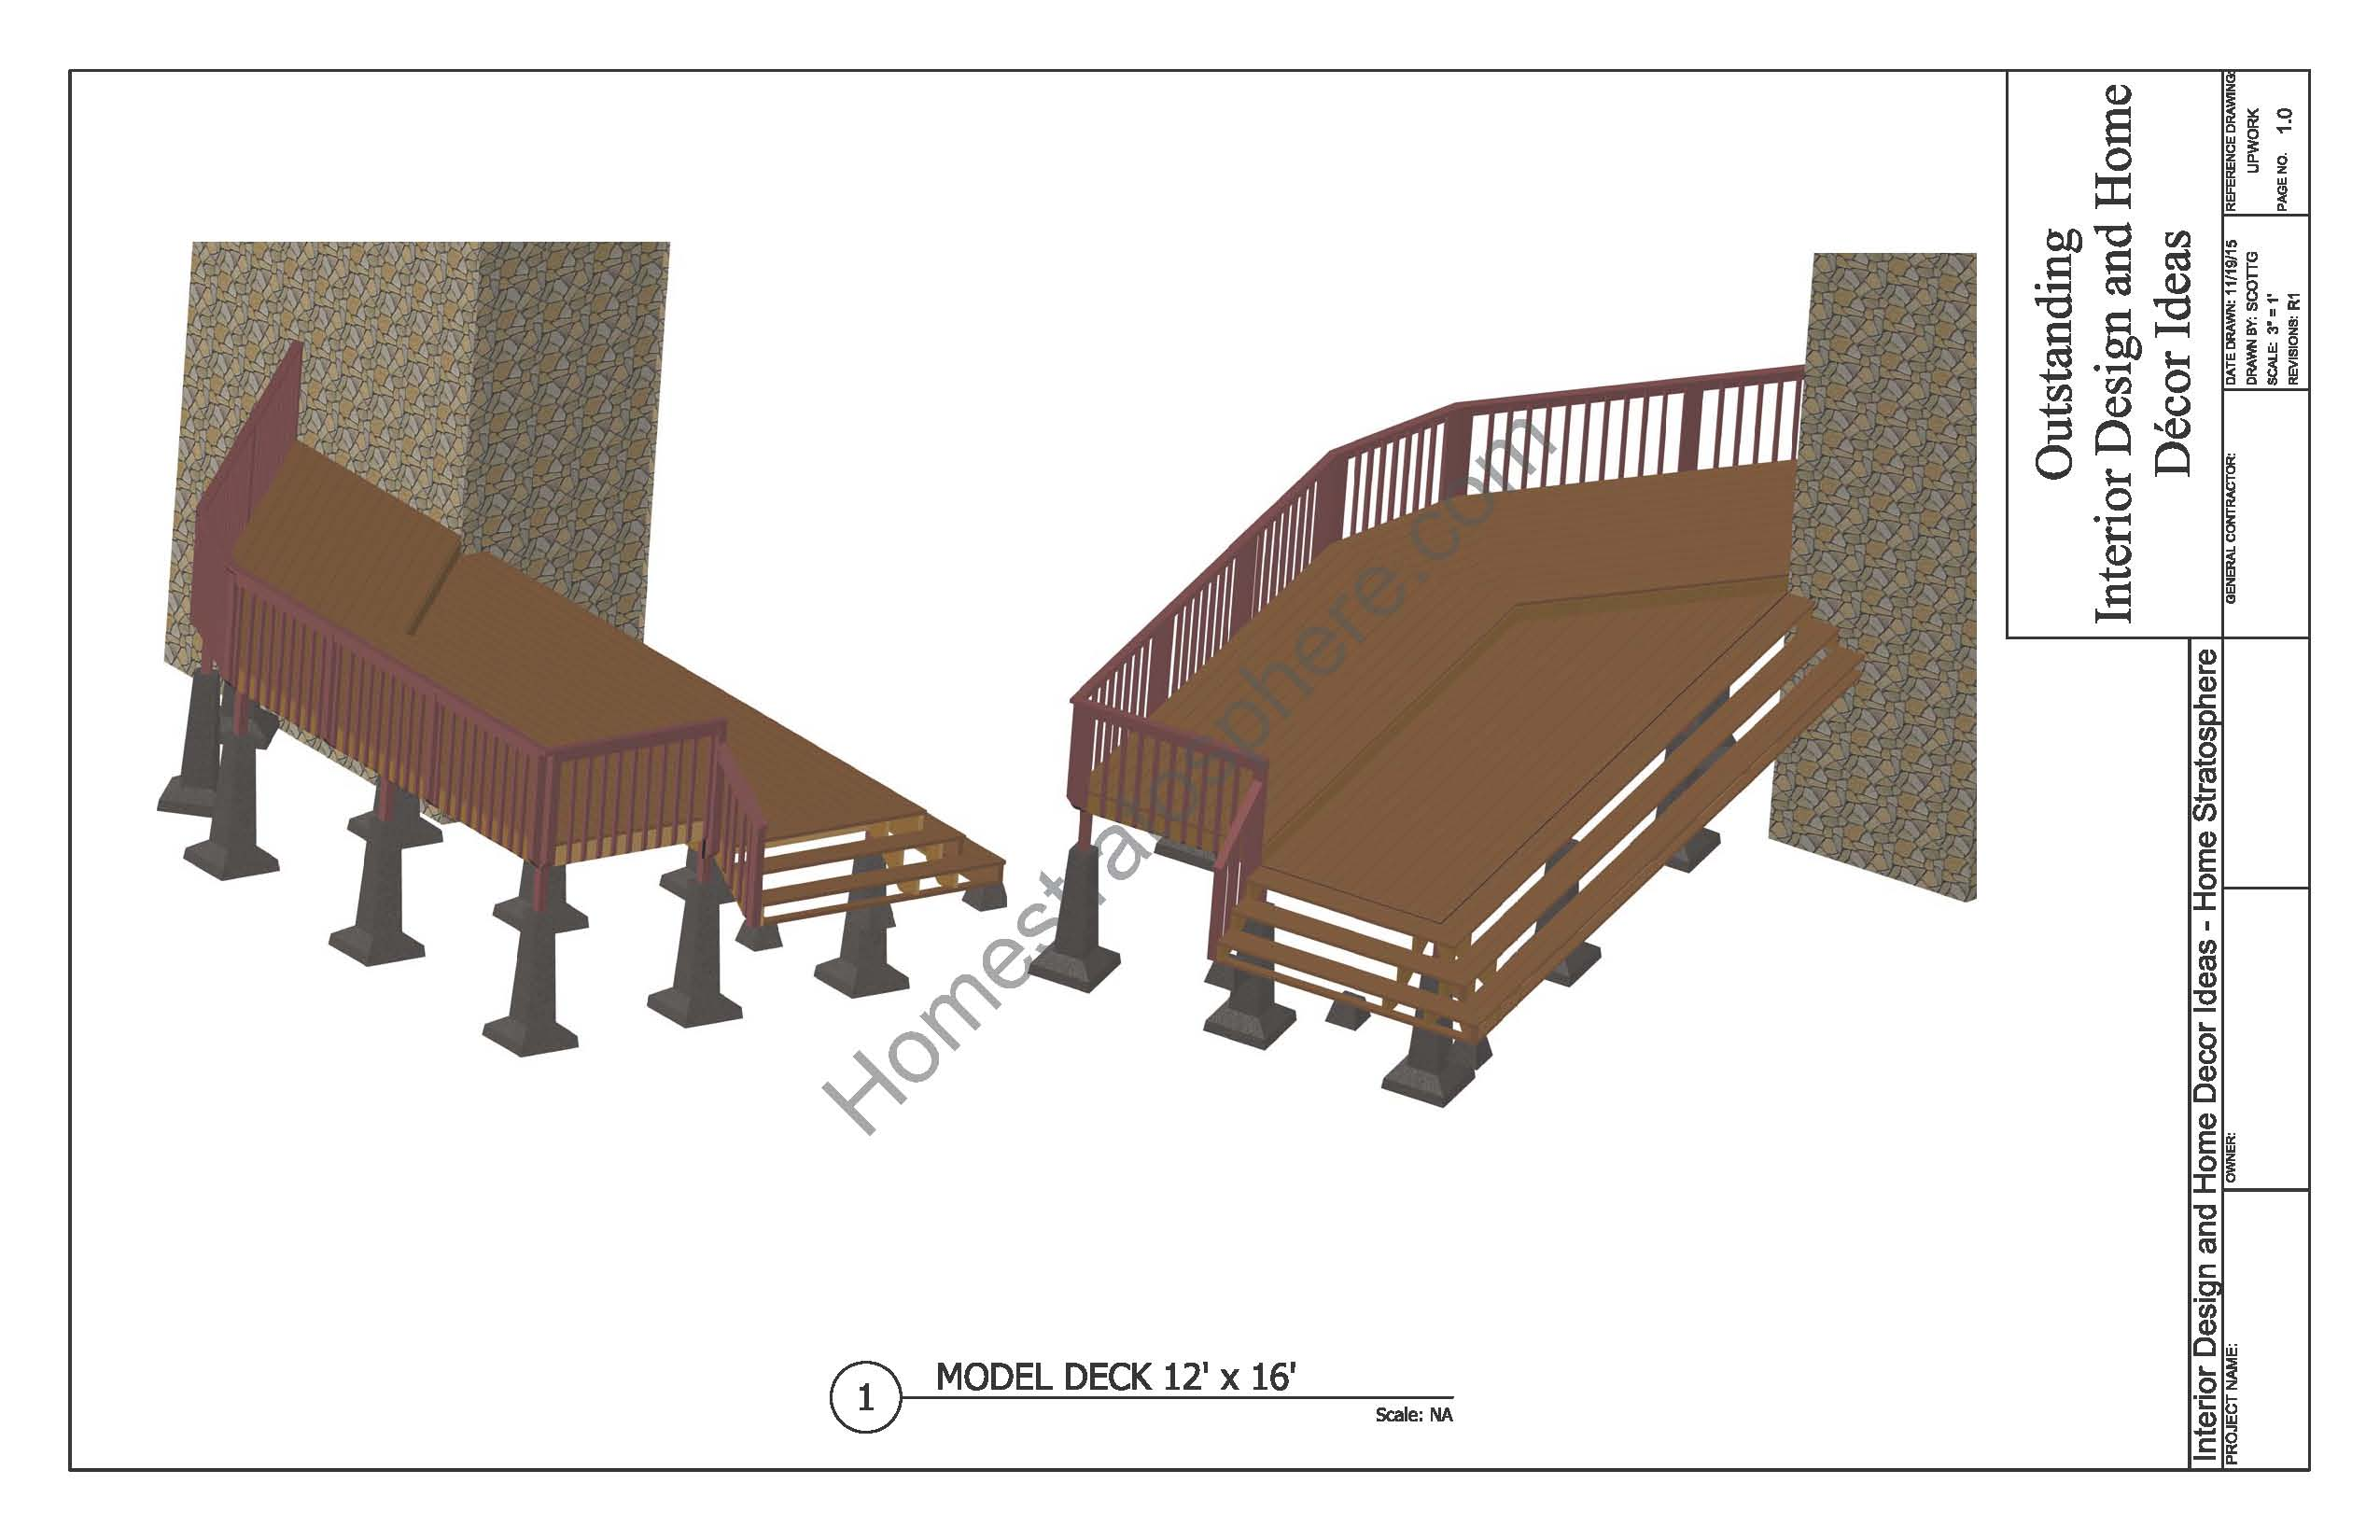 2 level deck plan blueprint free pdf download 2 level deck overview design baanklon Images